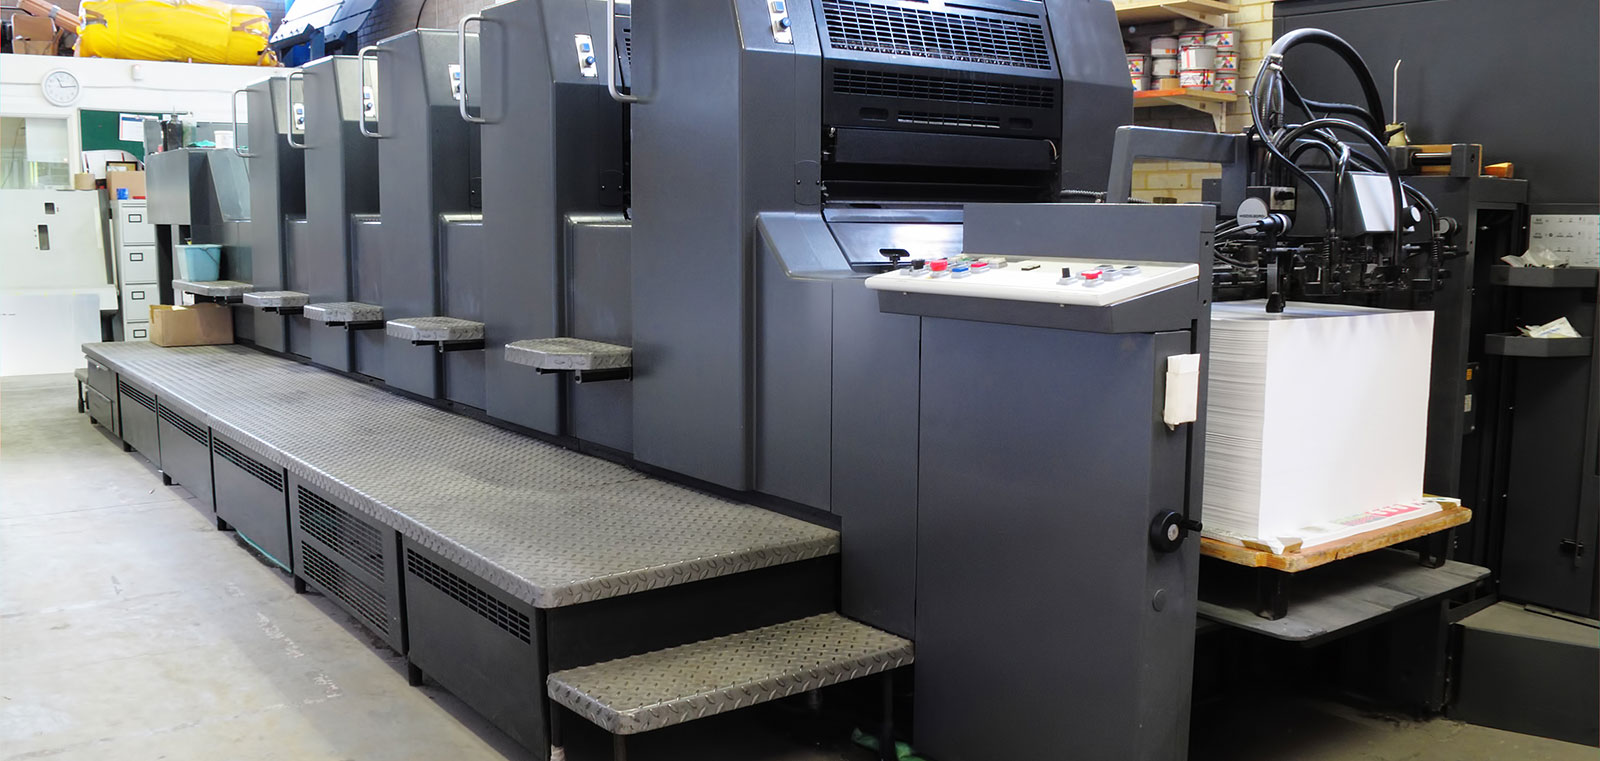 Our in-house offset capabilities are cost-effective for high volume printing